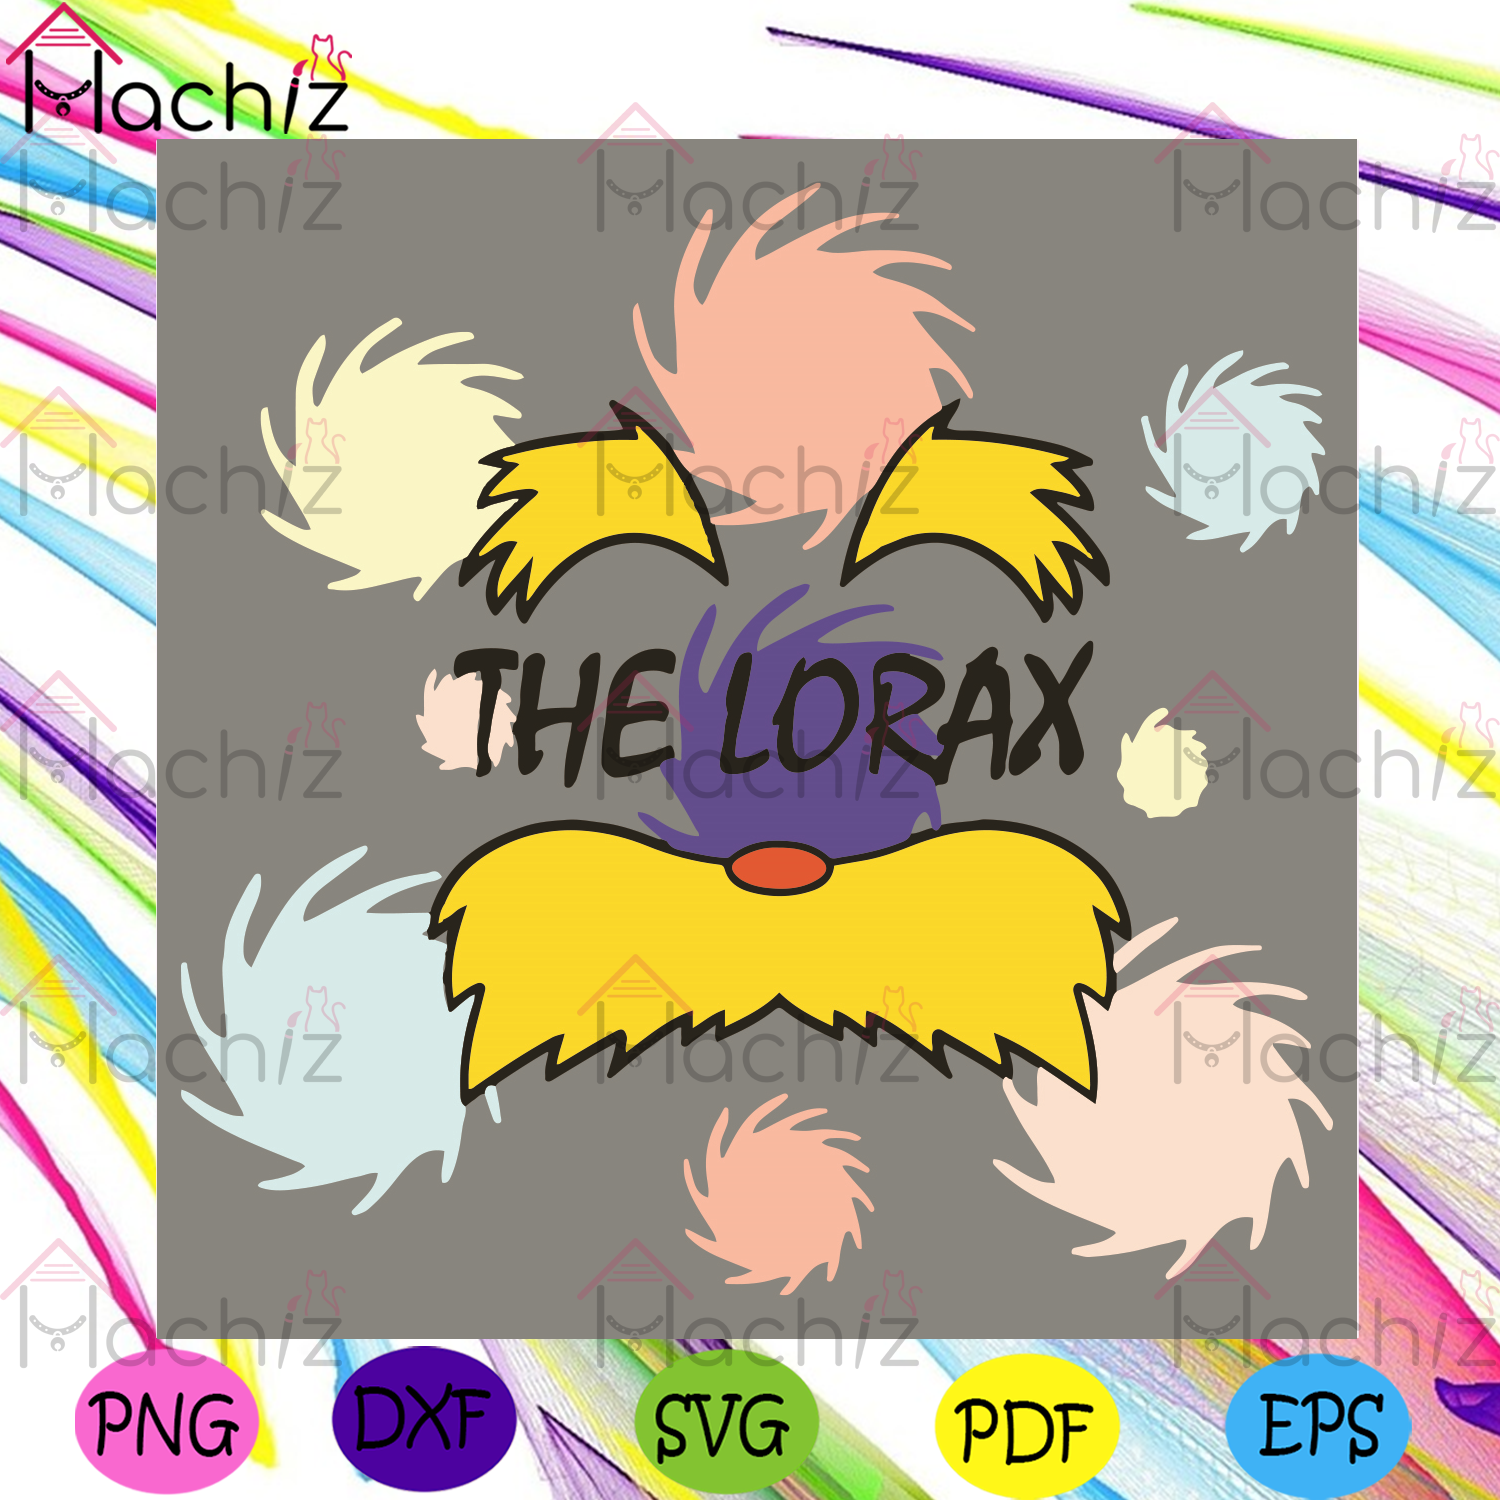 The Lorax Svg, Dr Seuss Svg, The Lorax Dr Seuss Svg, The Lorax Lovers Svg, The Lorax Gifts Svg, The Lorax Face Svg, The Lorax Funny Svg, Dr Seuss Gifts Svg, The Cat In The Hat Svg, Dr Seuss Lovers Svg, Funny Svg